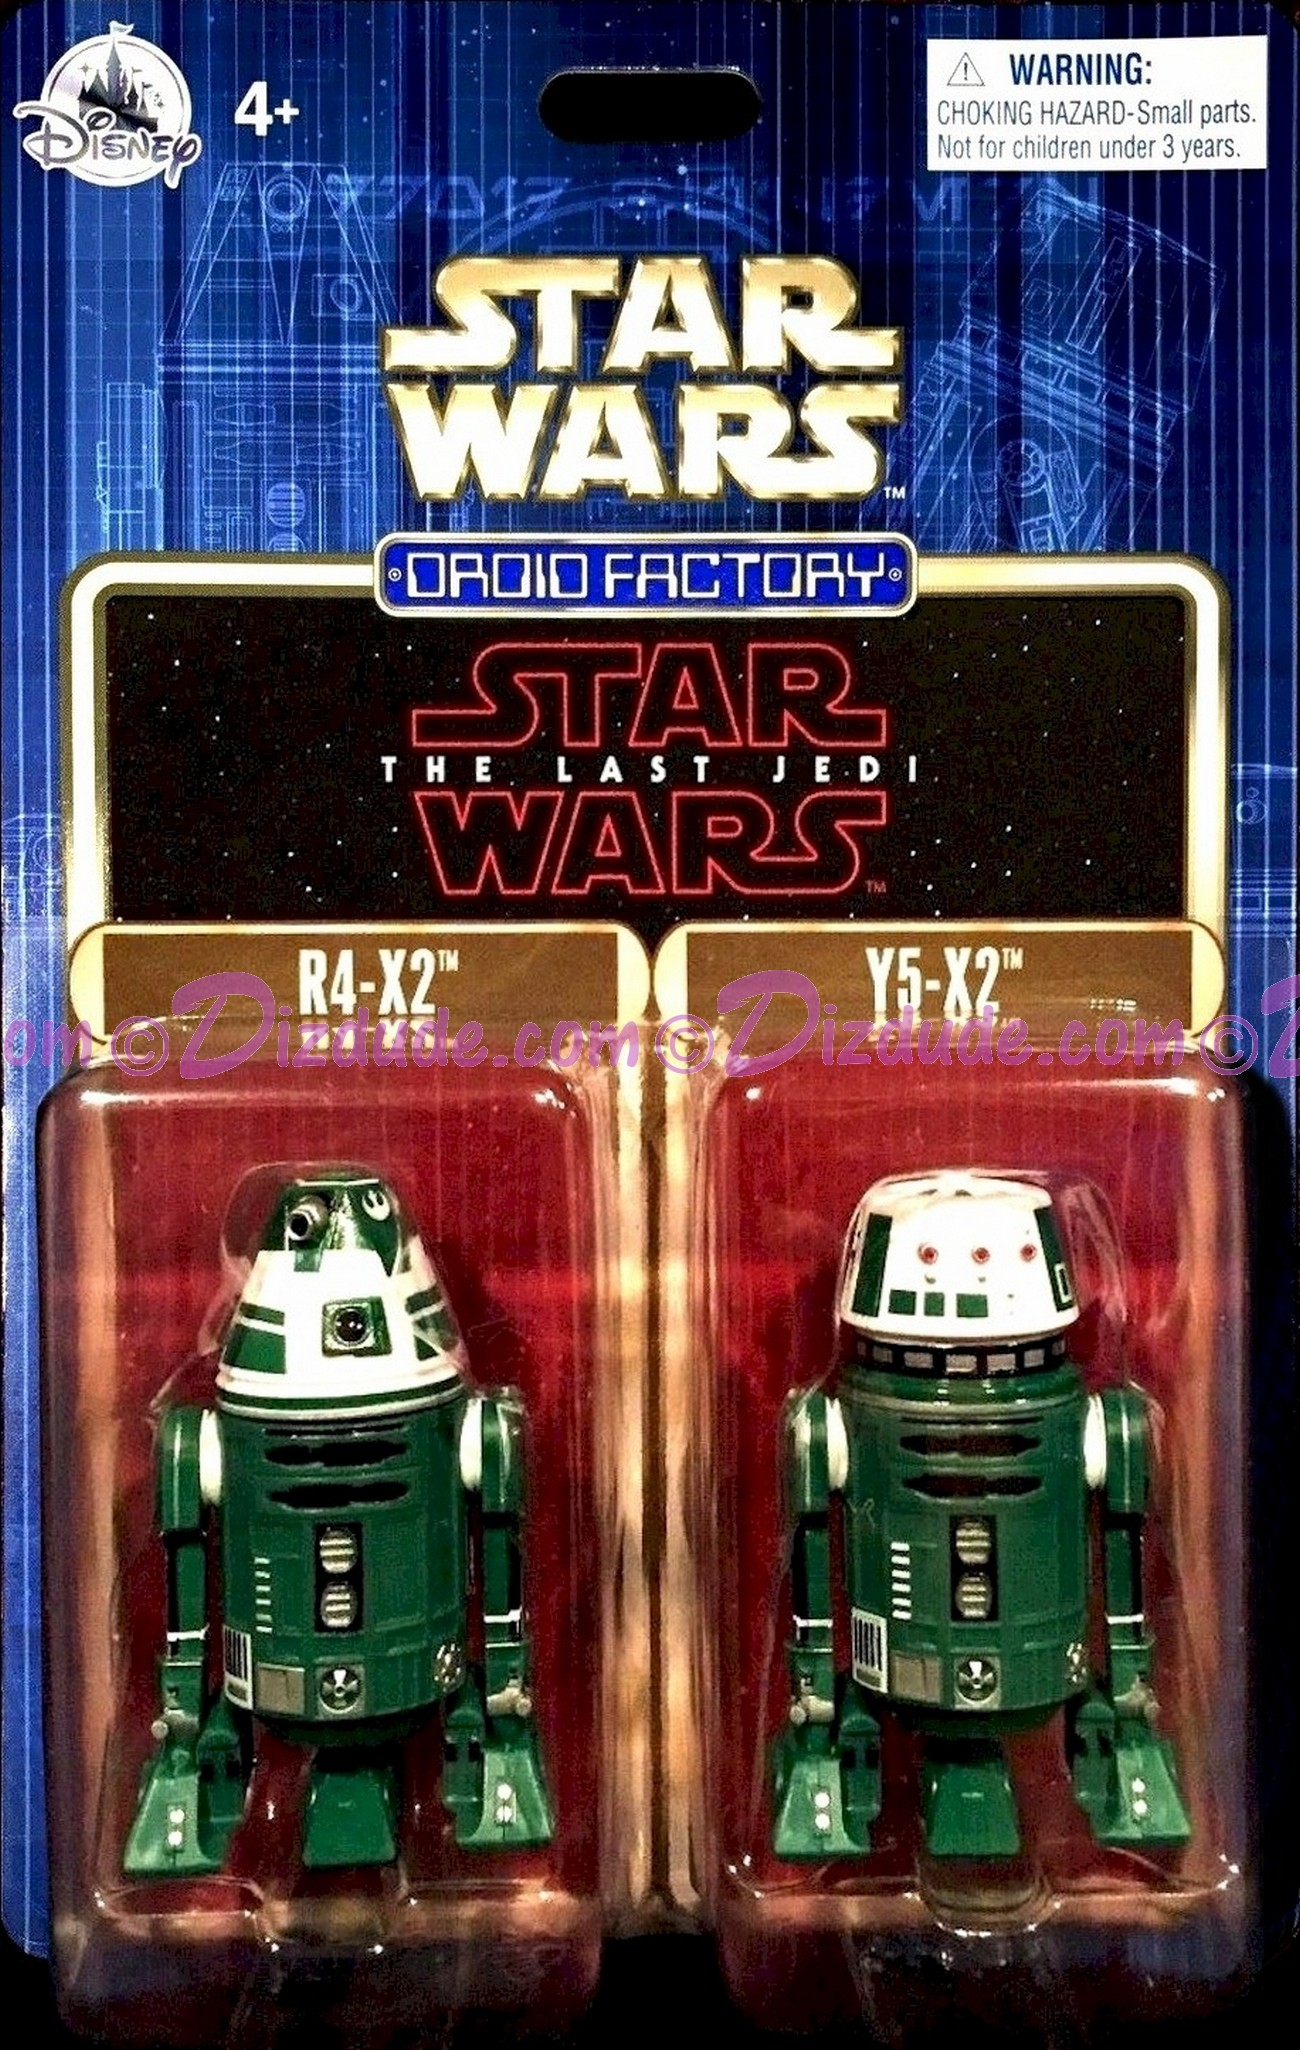 Star Wars The Last Jedi Twin Pack  R4-X2 & Y5-X2 Astromech Droids - Disney World DROID FACTORY Action Figures 3¾ Inch - Limited Release © Dizdude.com